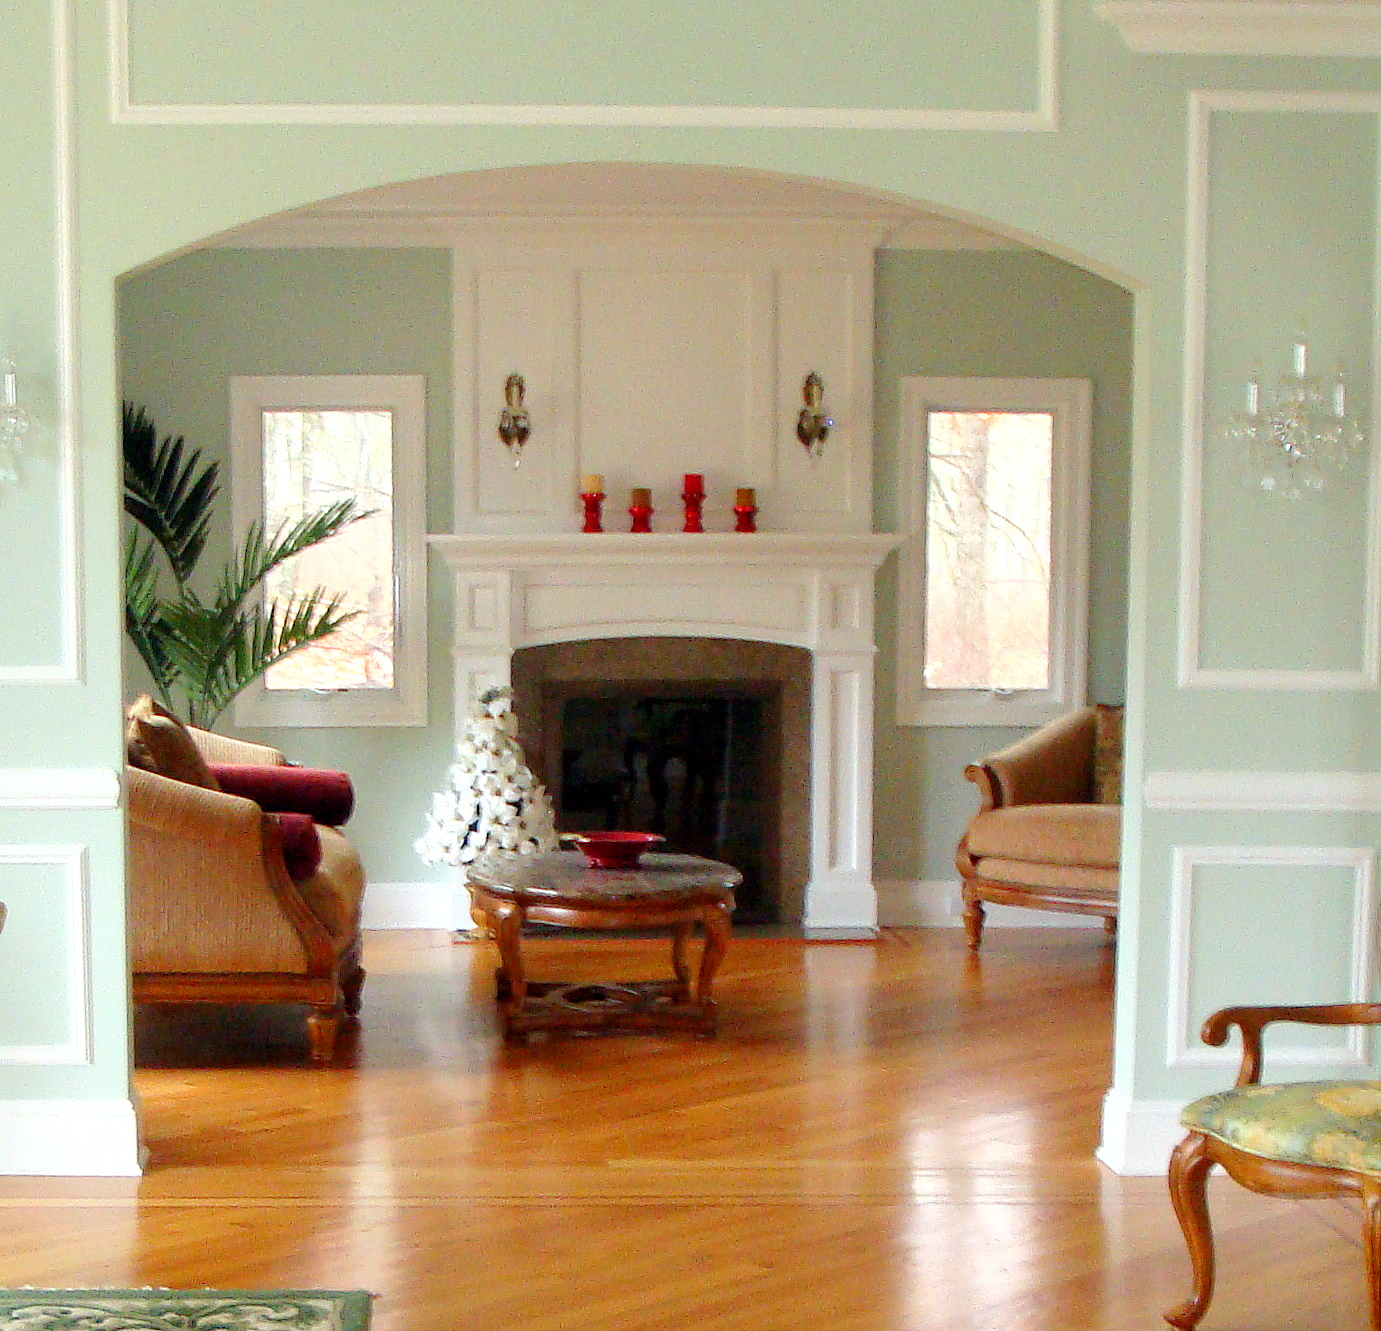 Robin lechner interior designs timeless living and being for Timeless fireplace designs